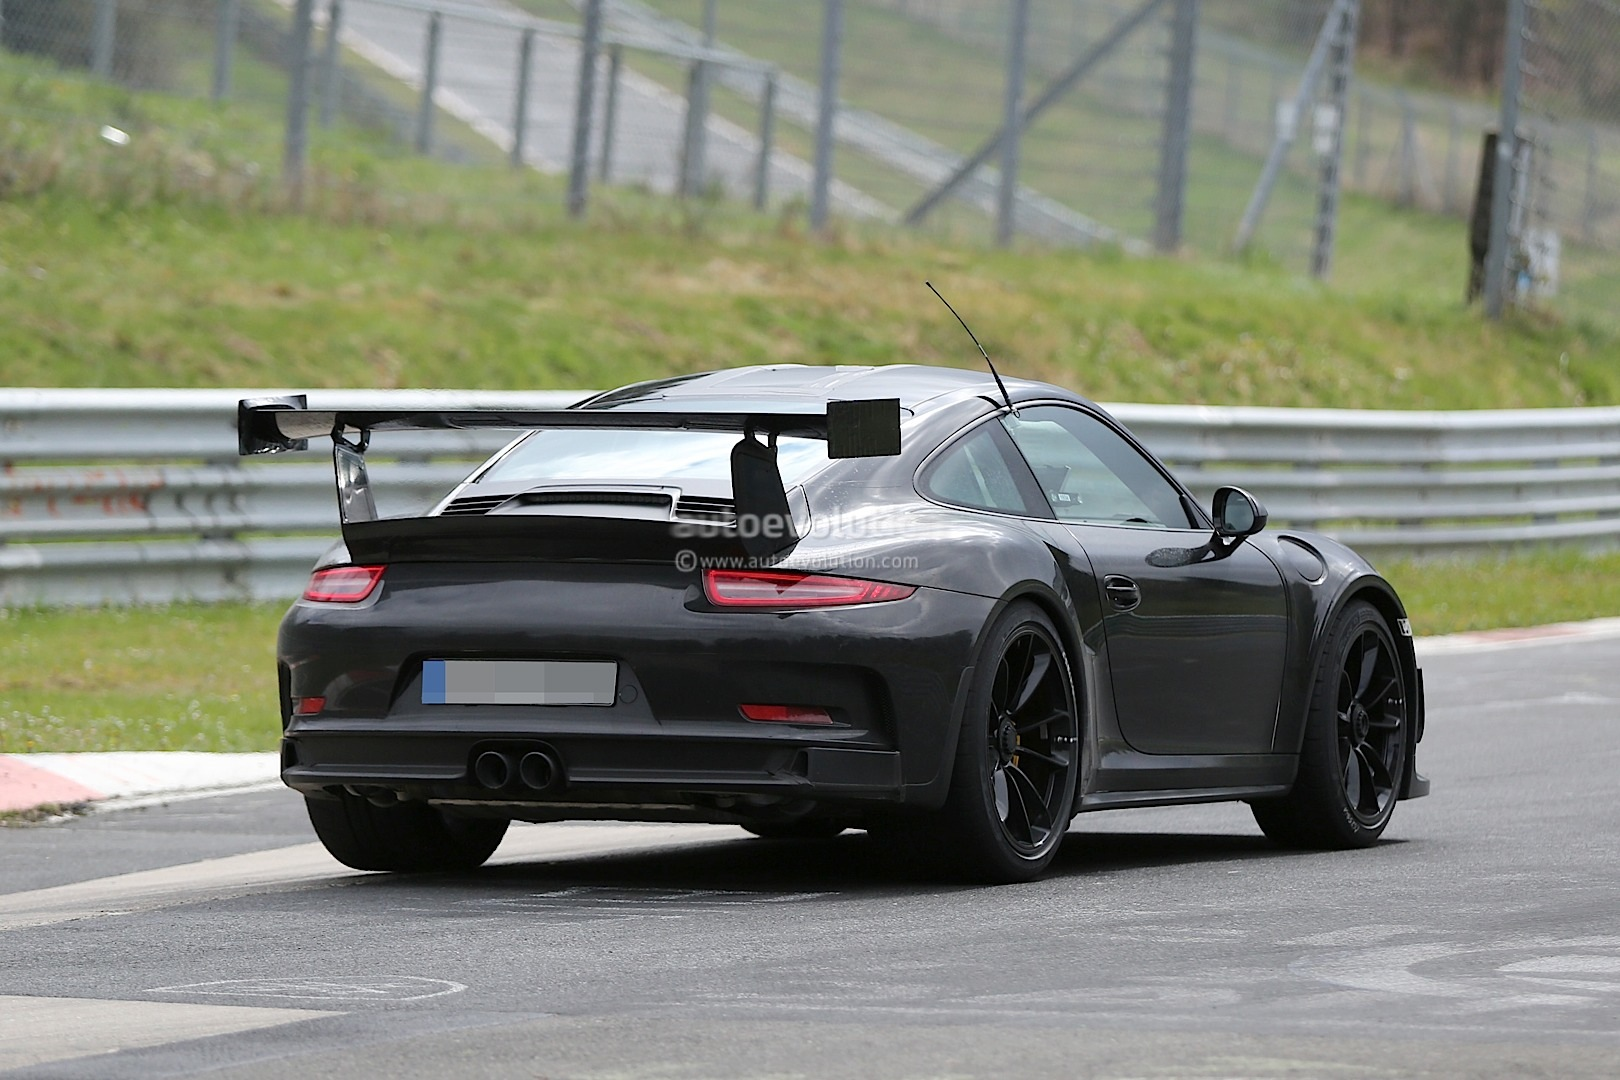 new porsche 911 gt2 spied lapping the nurburgring autoevolution. Black Bedroom Furniture Sets. Home Design Ideas